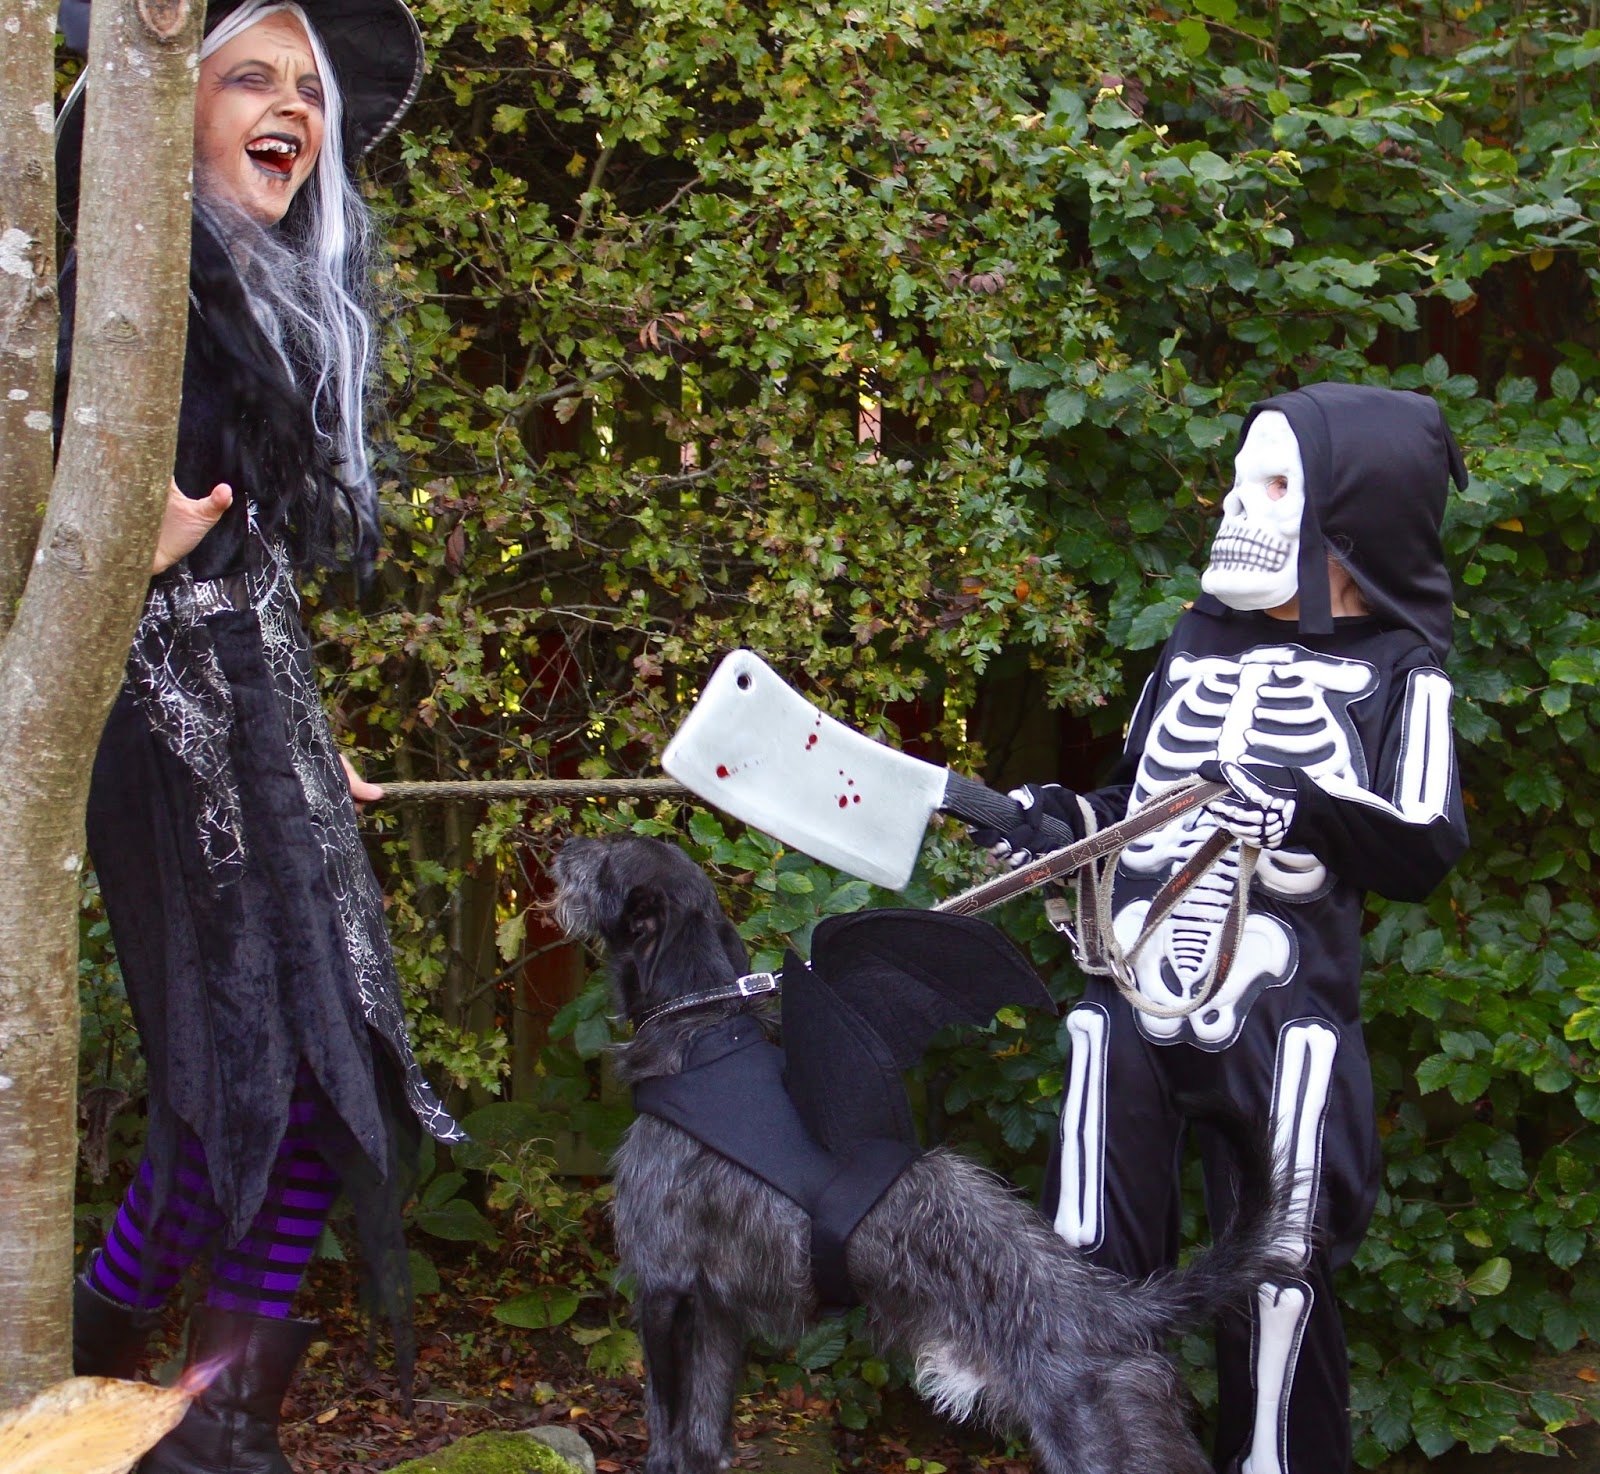 Children having fun with their pet dog at halloween.